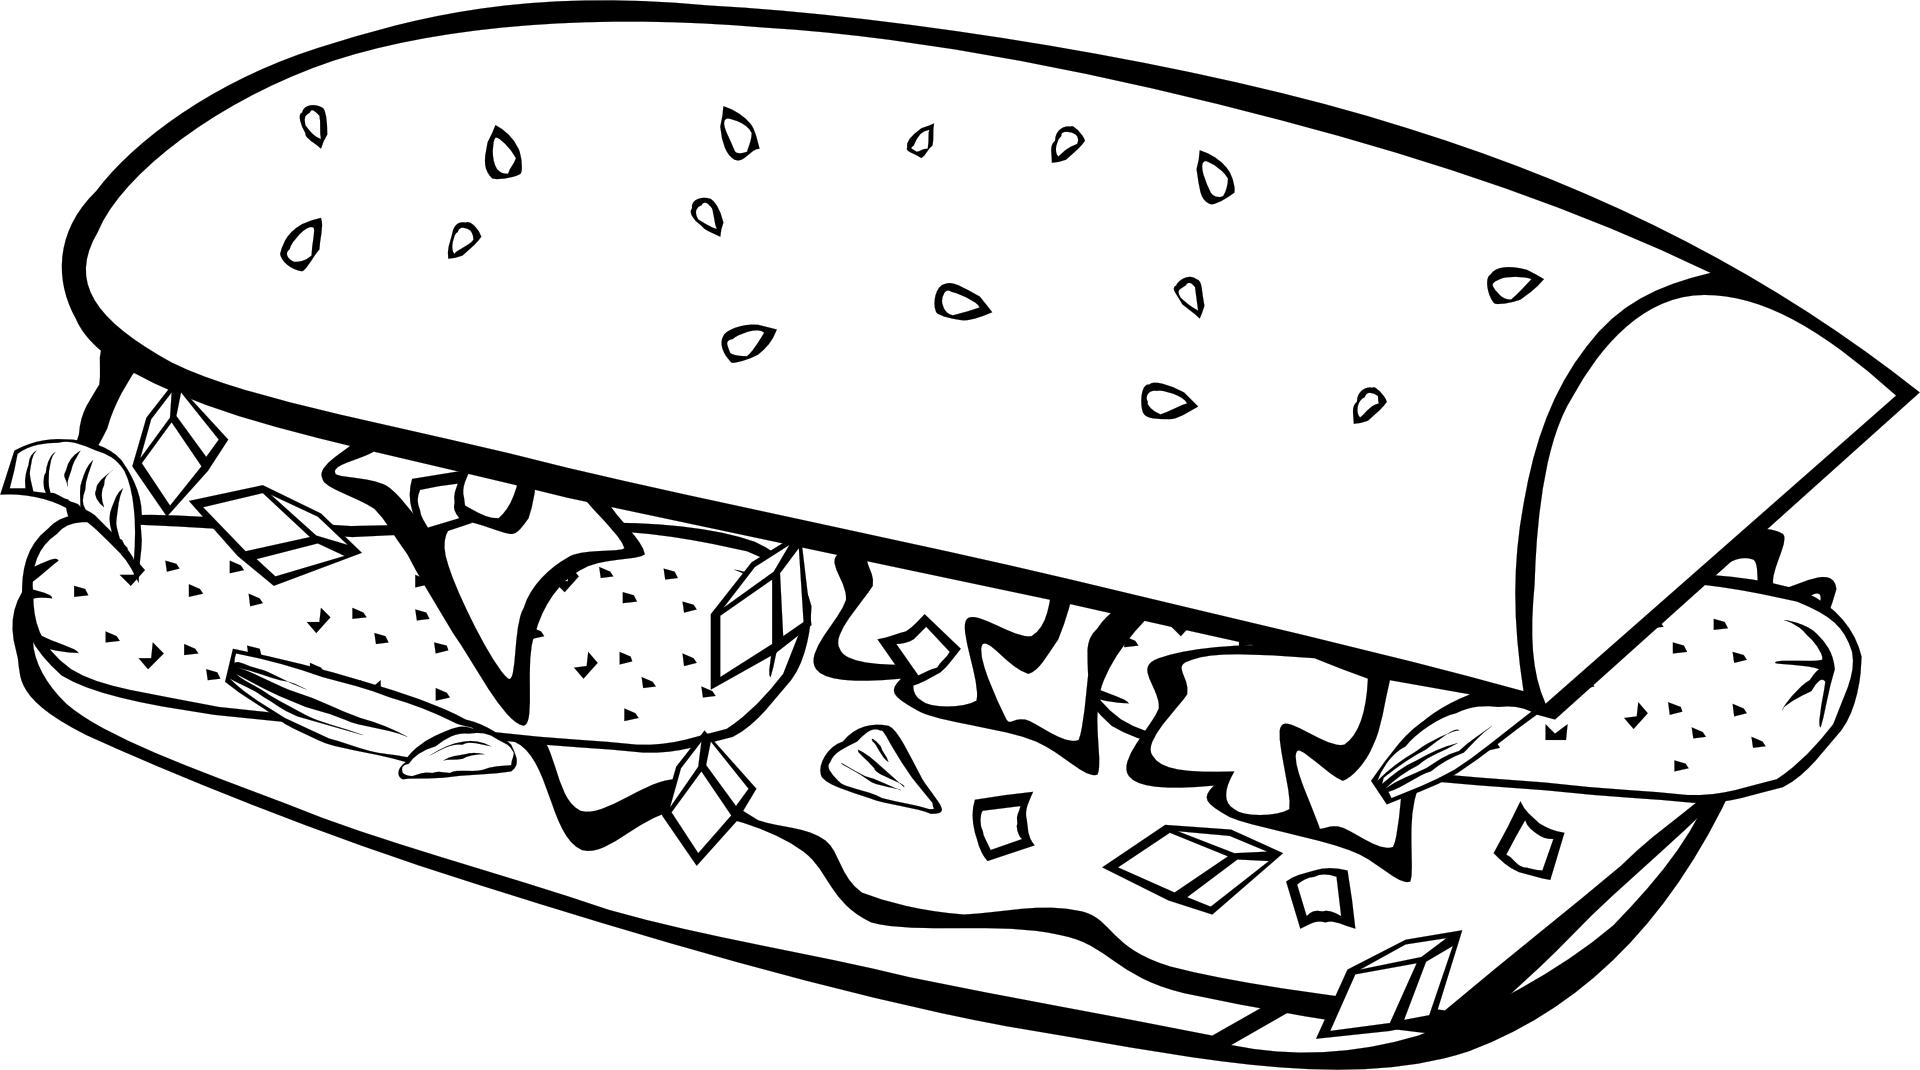 fast food breakfast sub sandwich sandwich png black and white transparent cartoon jing fm fast food breakfast sub sandwich